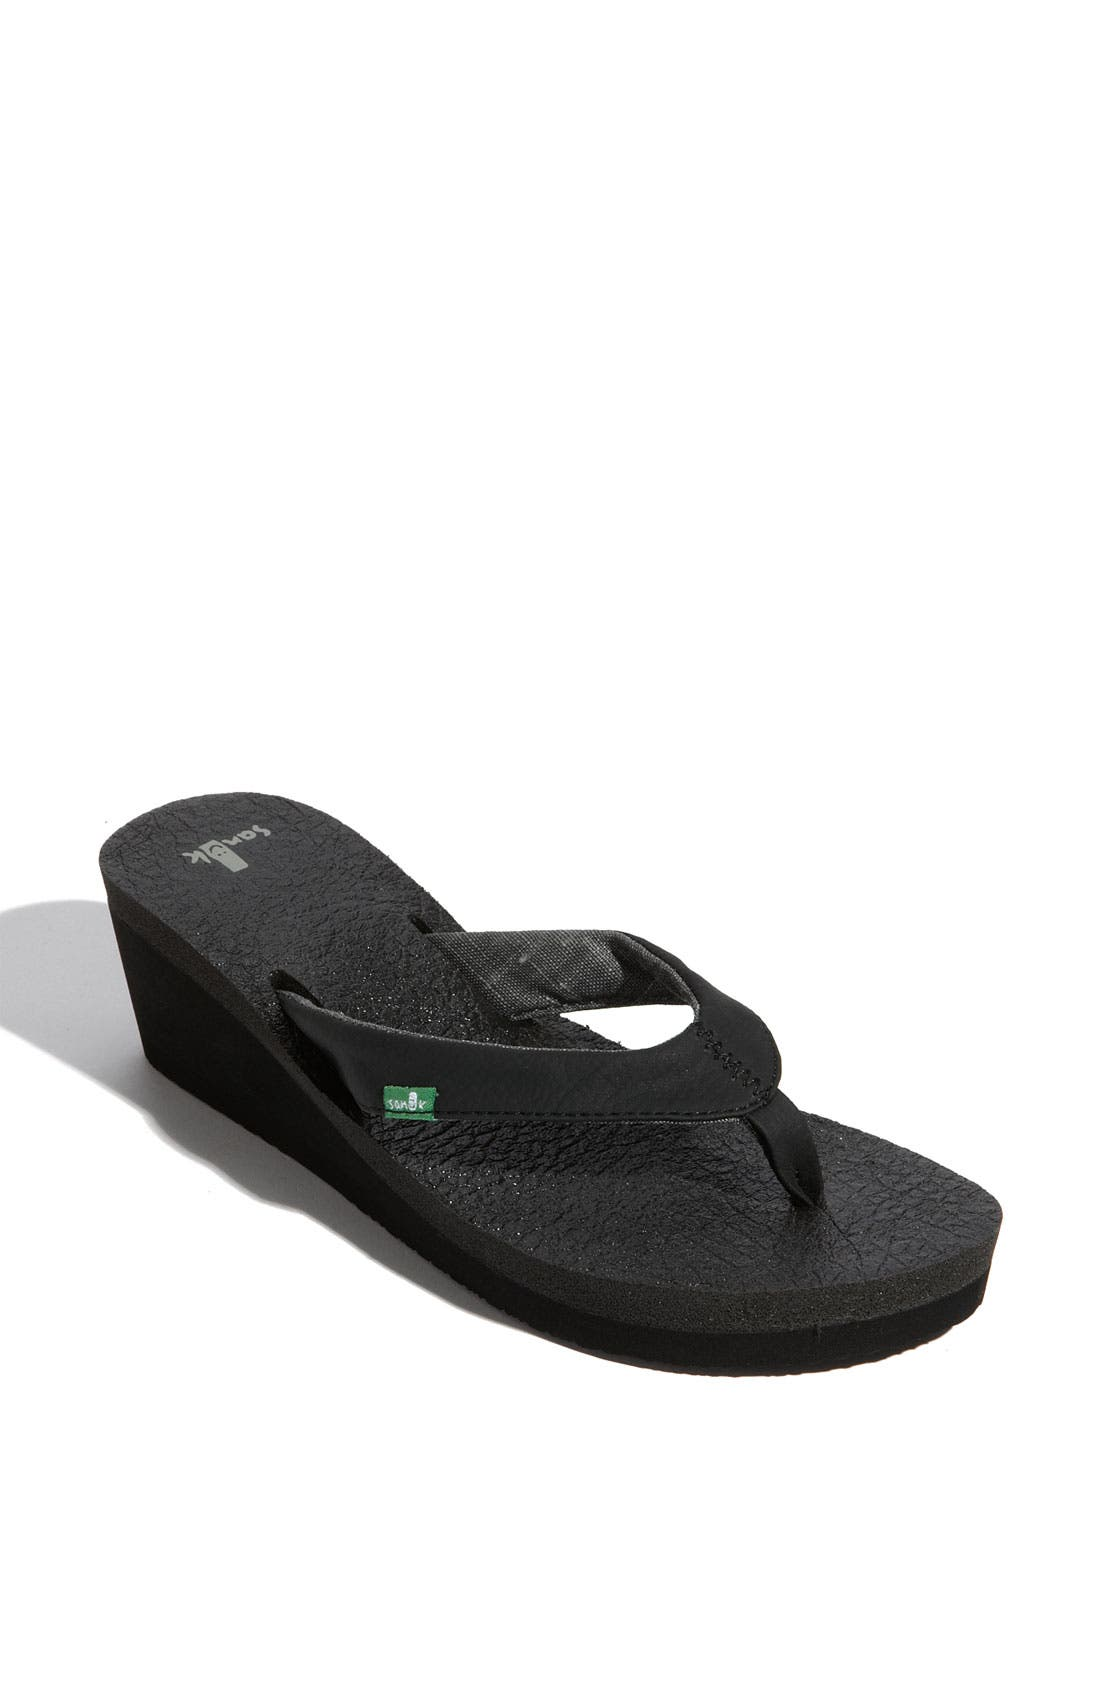 'Yoga Mat' Wedge Flip Flop,                         Main,                         color, Black